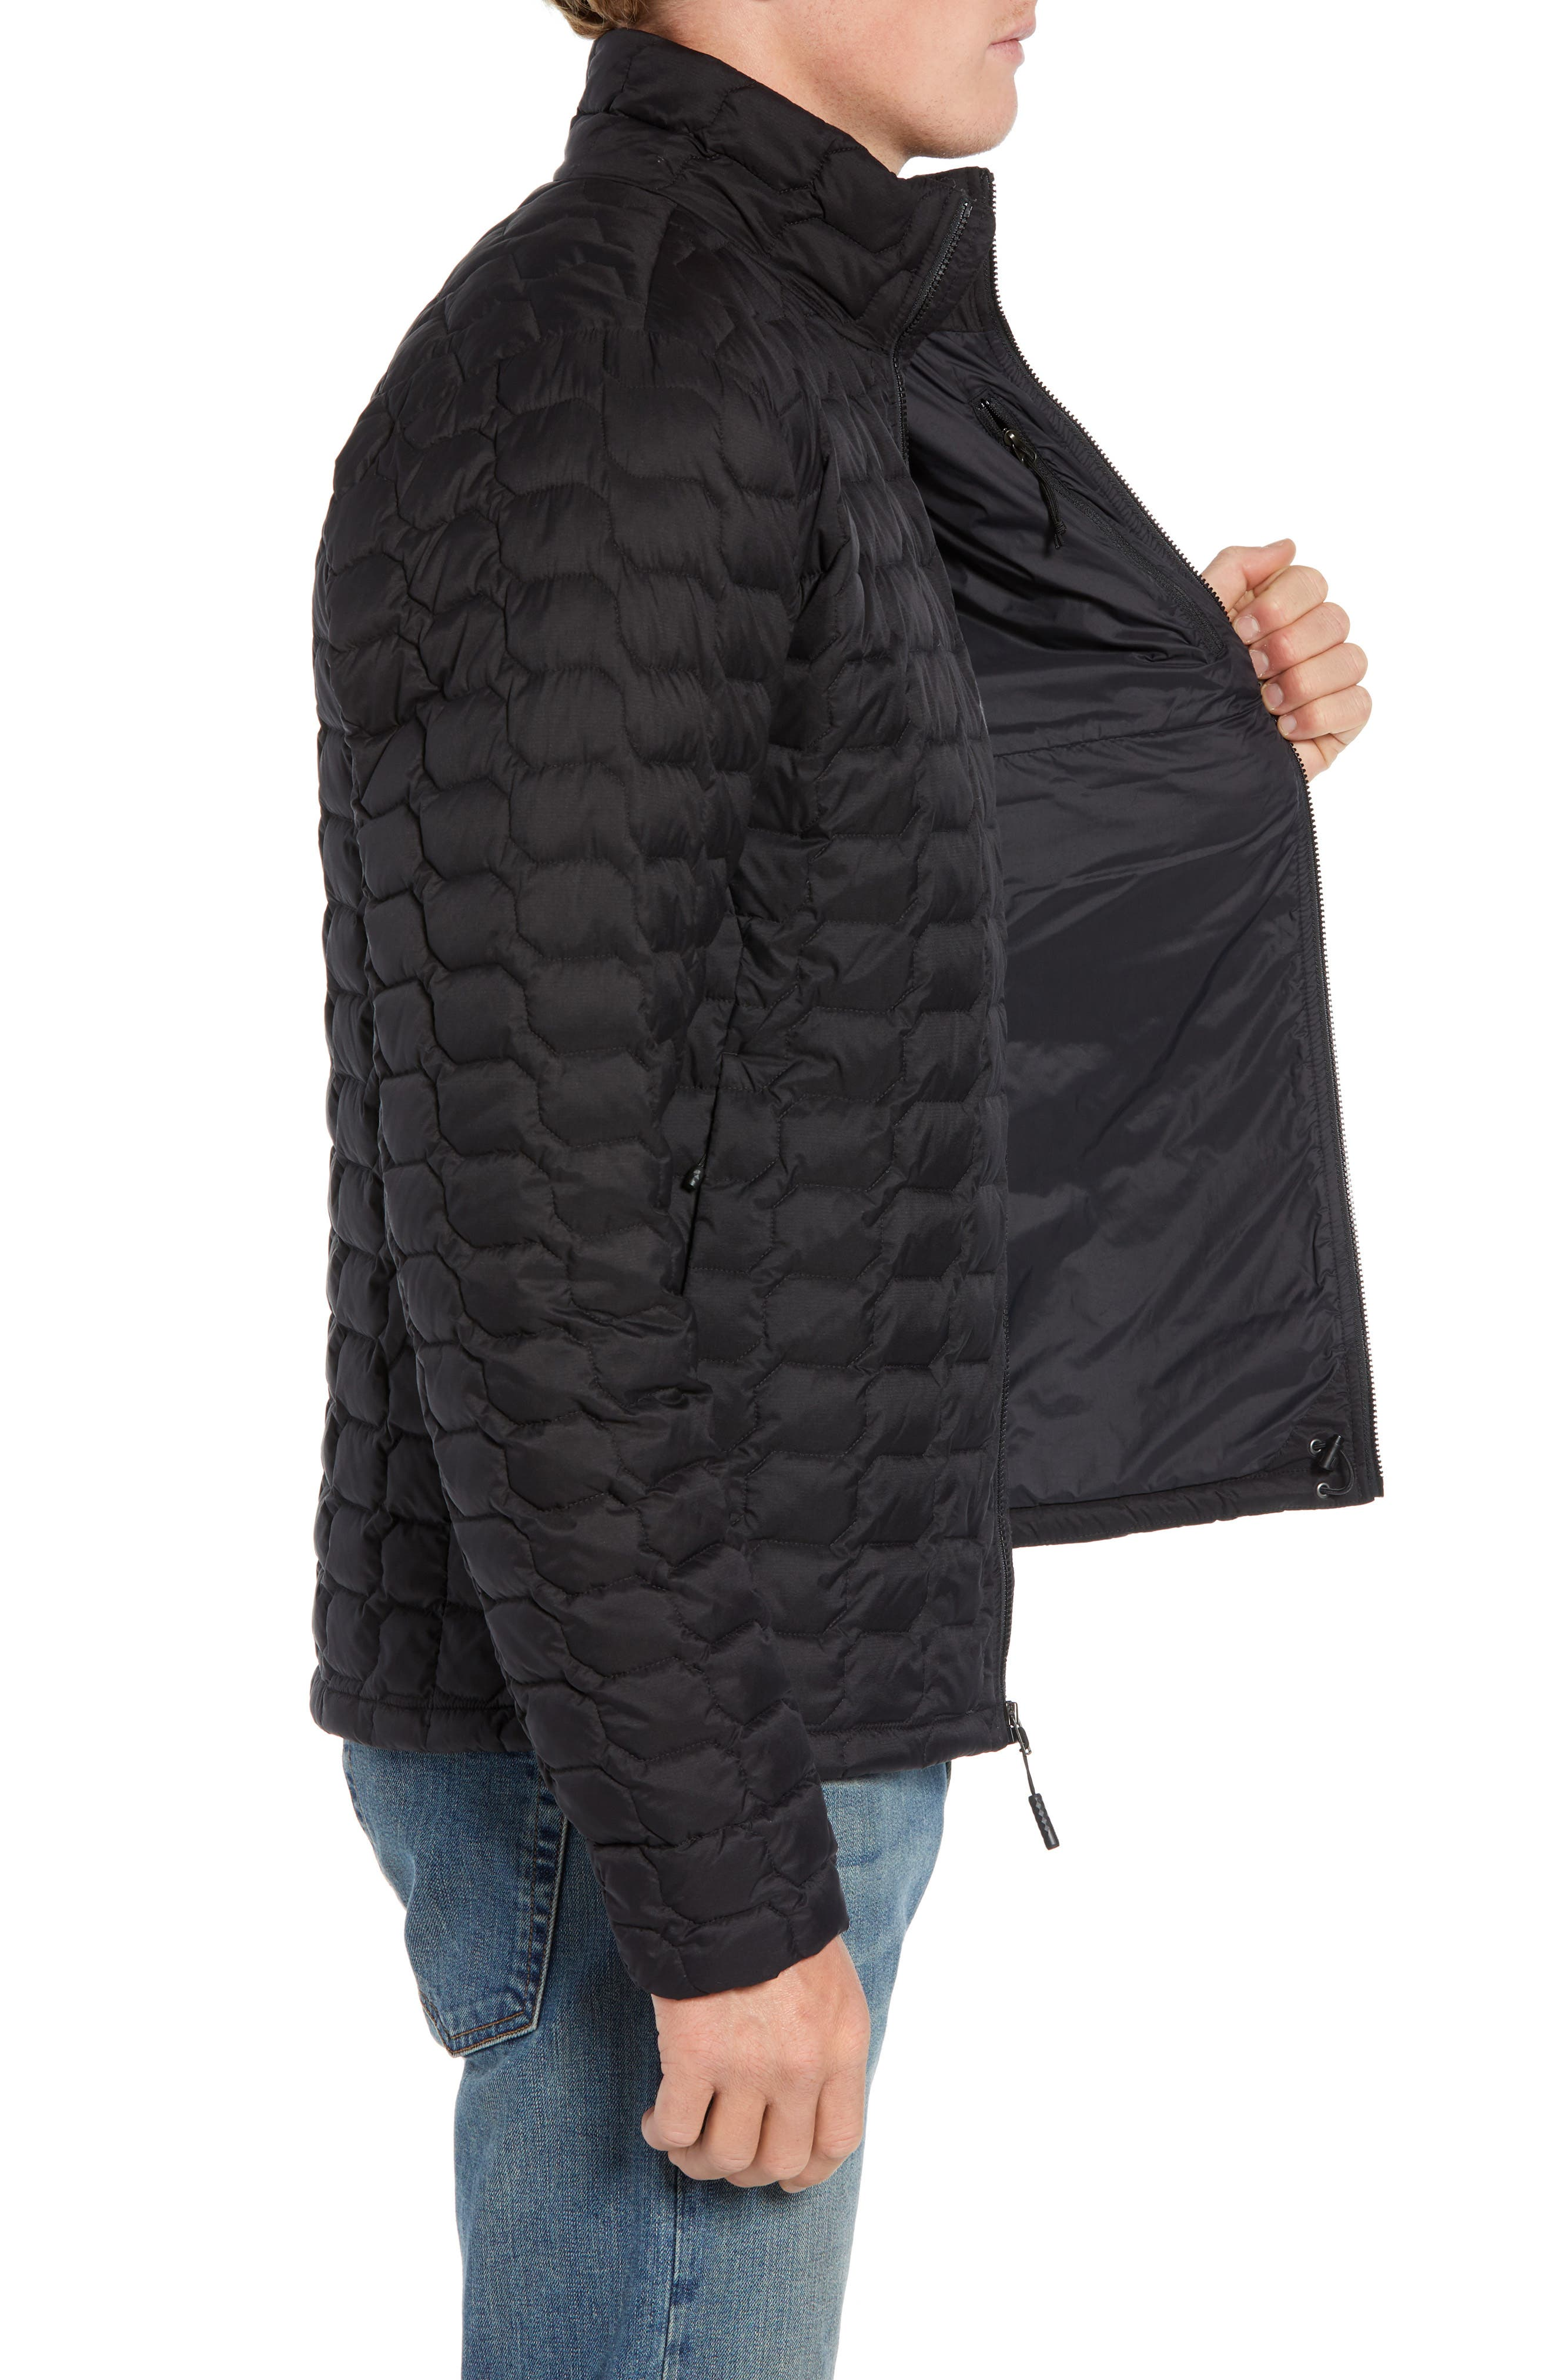 THE NORTH FACE, ThermoBall<sup>™</sup> Jacket, Alternate thumbnail 4, color, 001